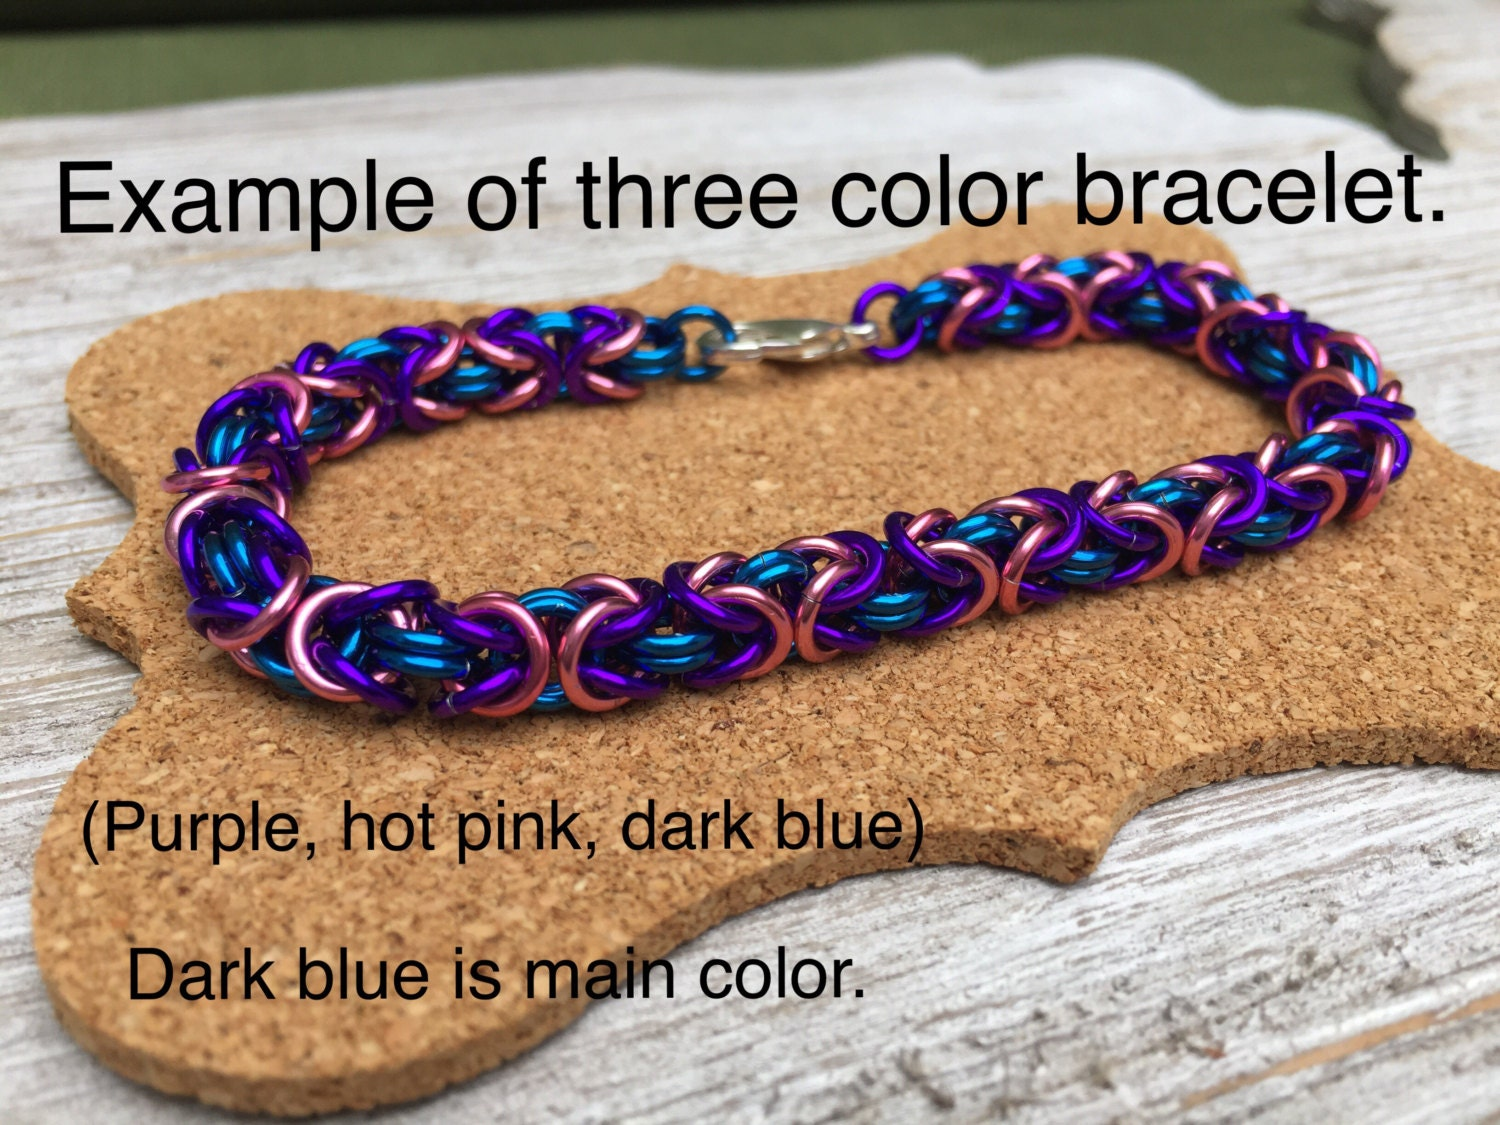 How to choose a bracelet